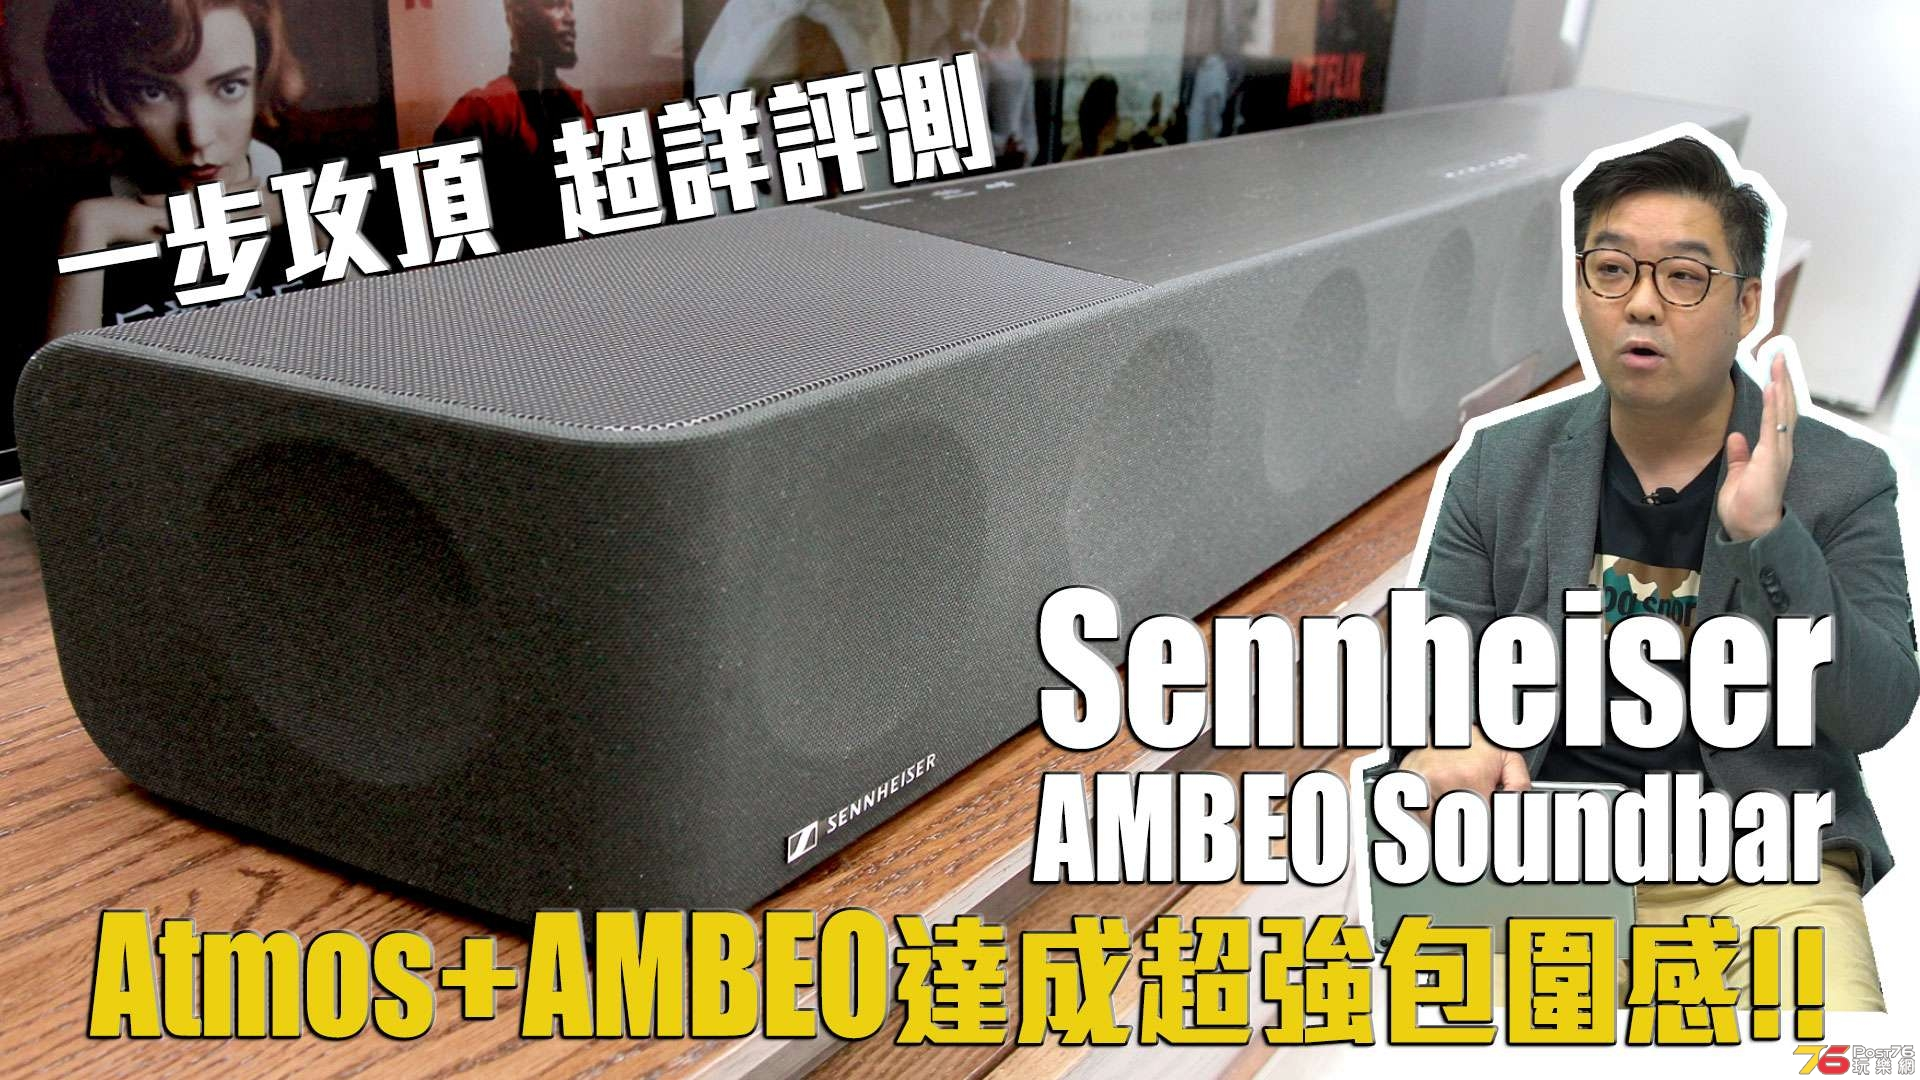 Sennheiser-Anbeo-soundbar-review-forum.jpg